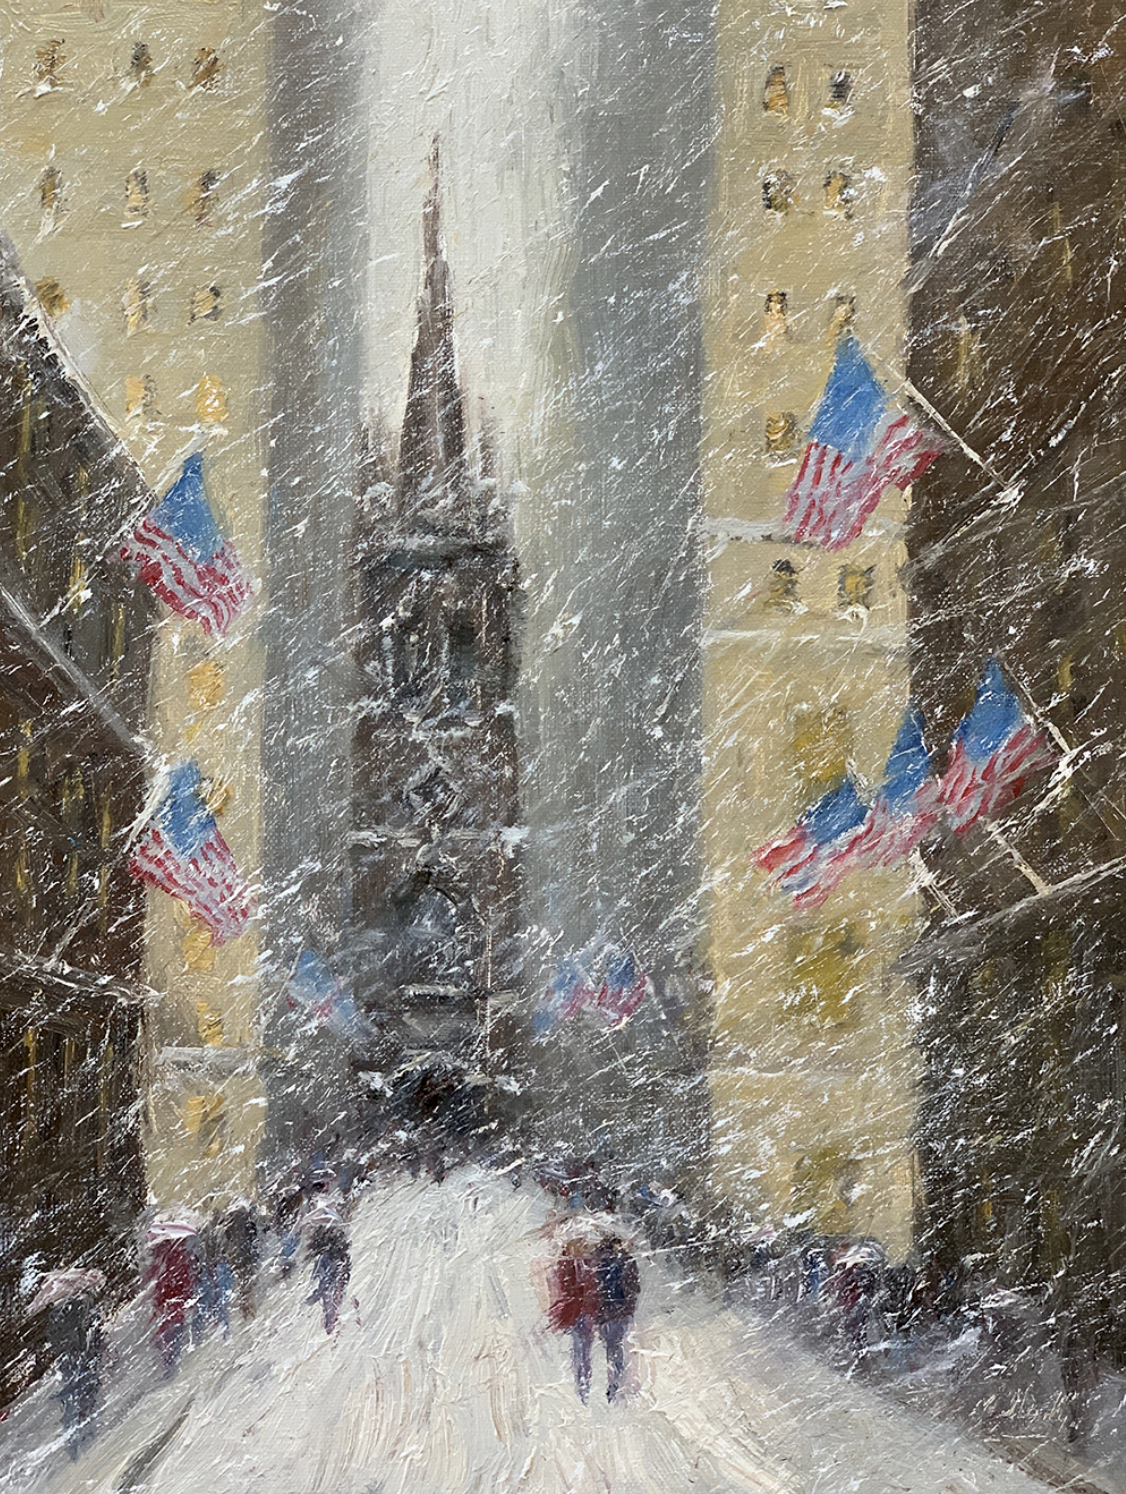 Winter Flags, Old Trinity Church, 12 x 9, oil on linen. Available at Rehs Contemporary Galleries.